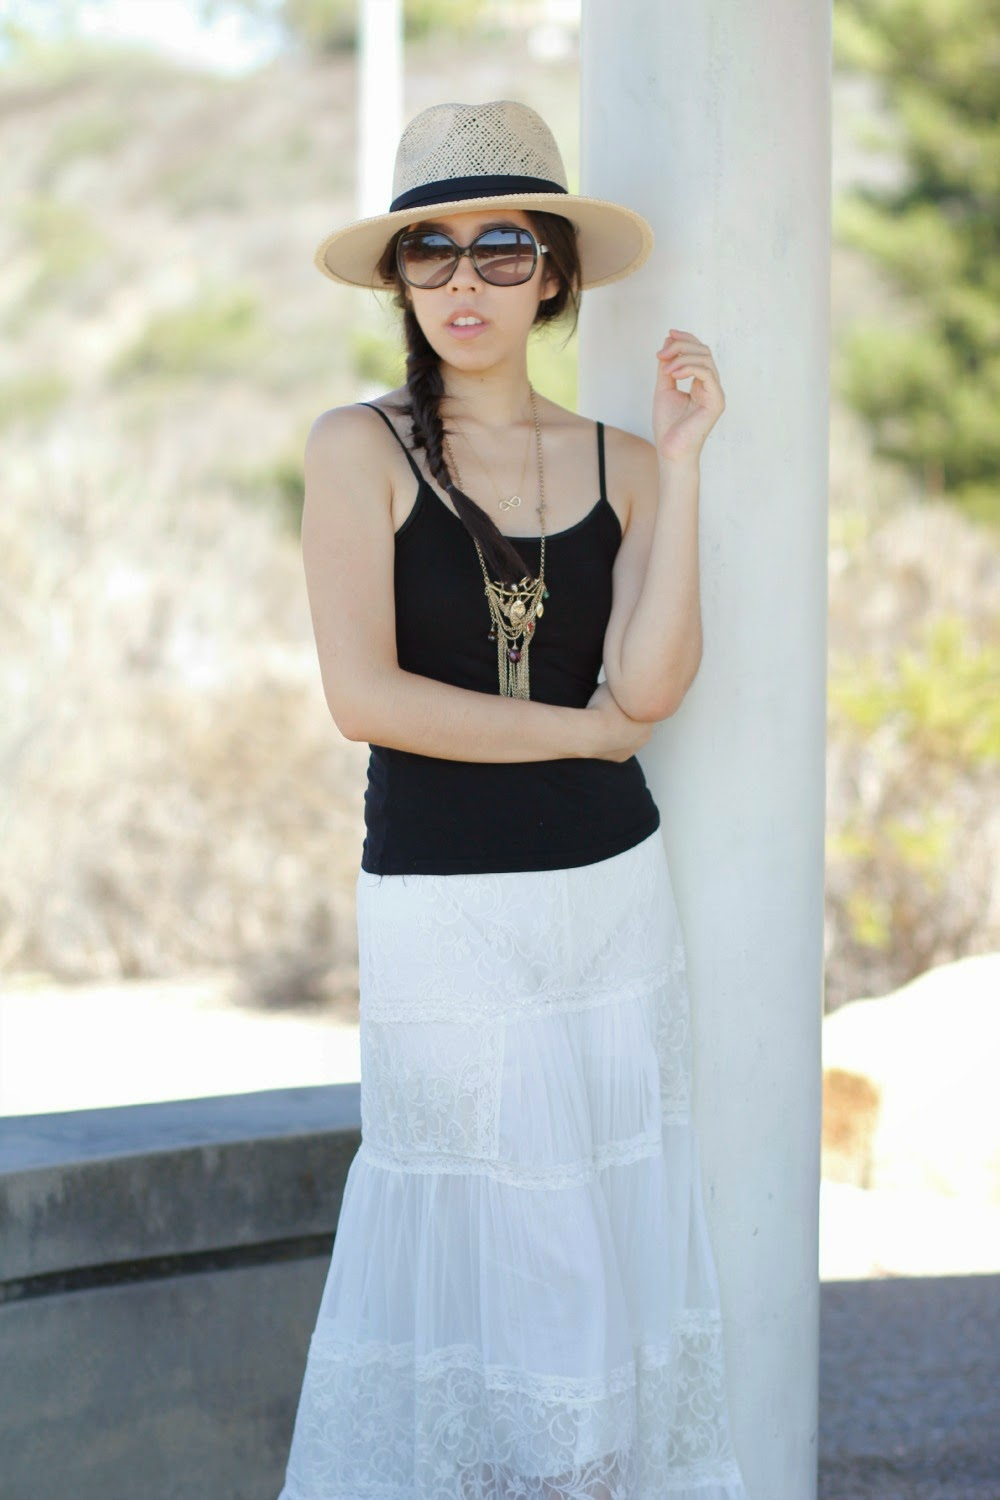 Adrienne Nguyen - How to Layer on GOld Necklace for  a Simple Outfit